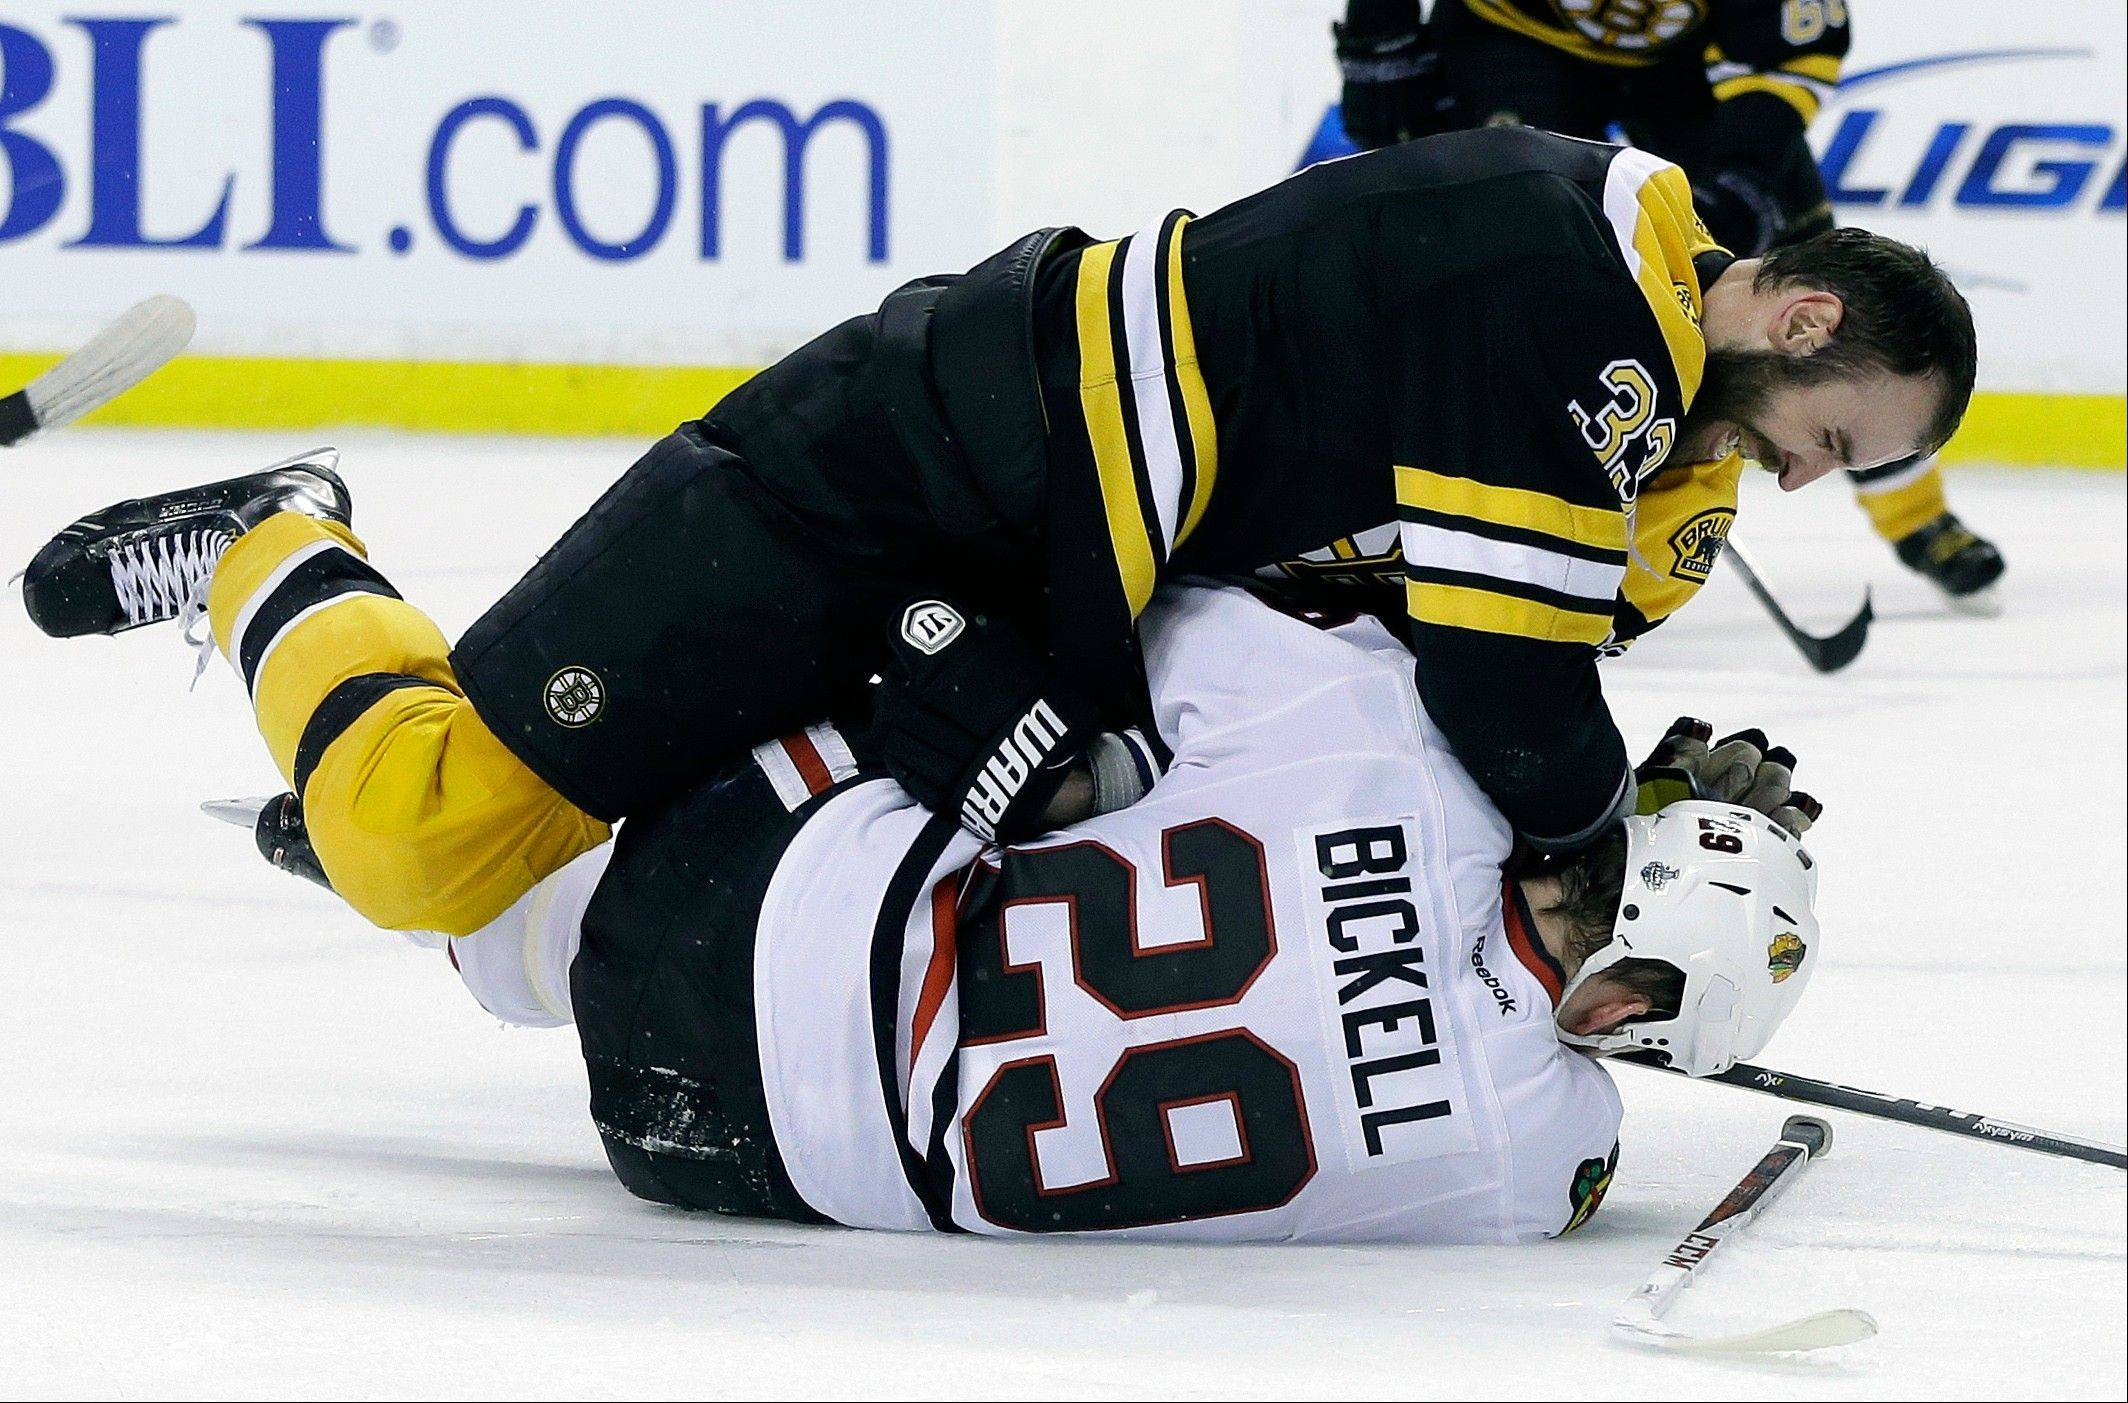 Boston Bruins defenseman Zdeno Chara (33), of Slovakia, takes down Chicago Blackhawks left wing Bryan Bickell (29) during the third period in Game 3 of the NHL hockey Stanley Cup Finals in Boston, Monday, June 17, 2013. The Bruins won 2-0.